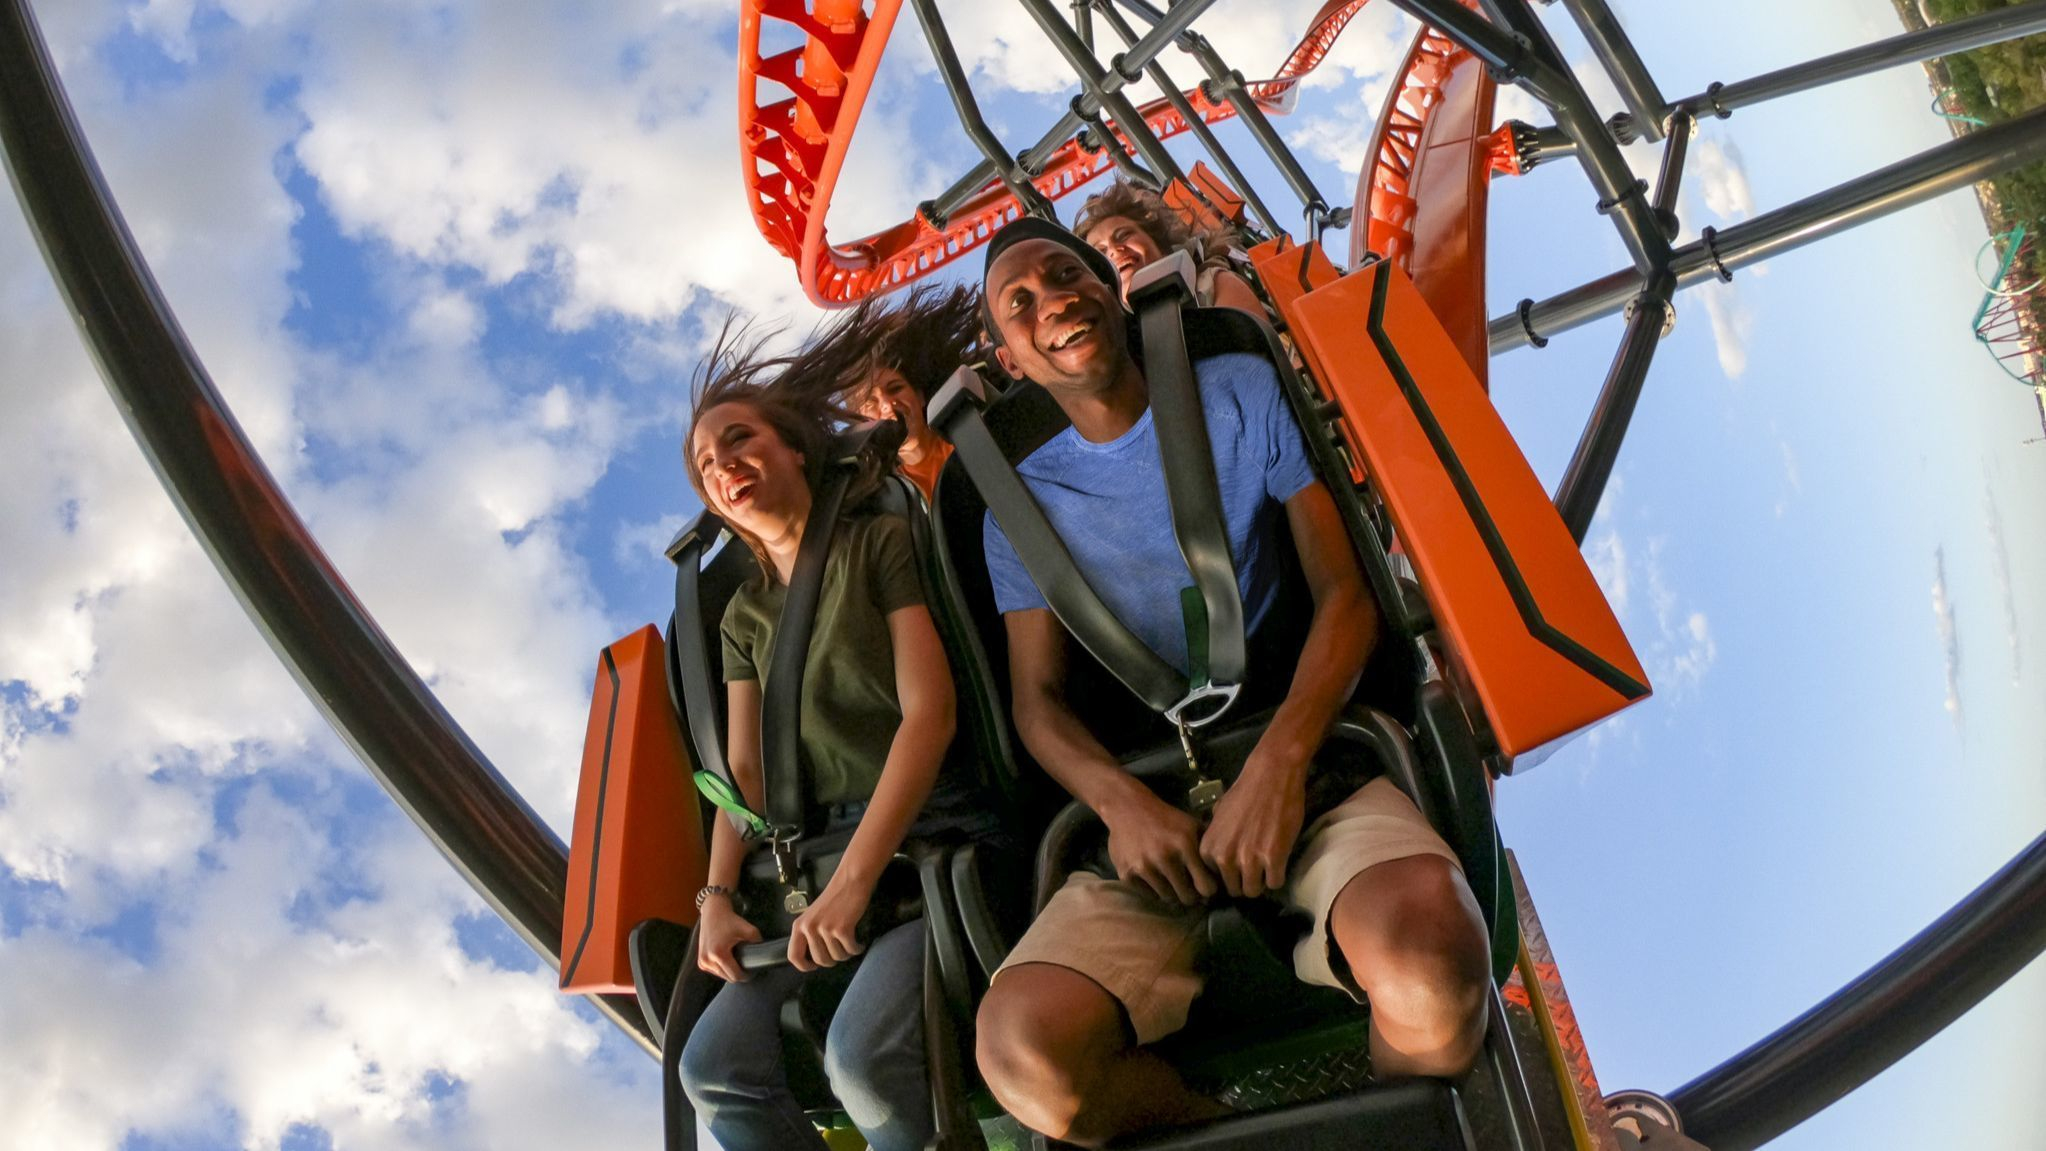 Busch Gardens Tampa Bay sets opening date for Tigris roller coaster